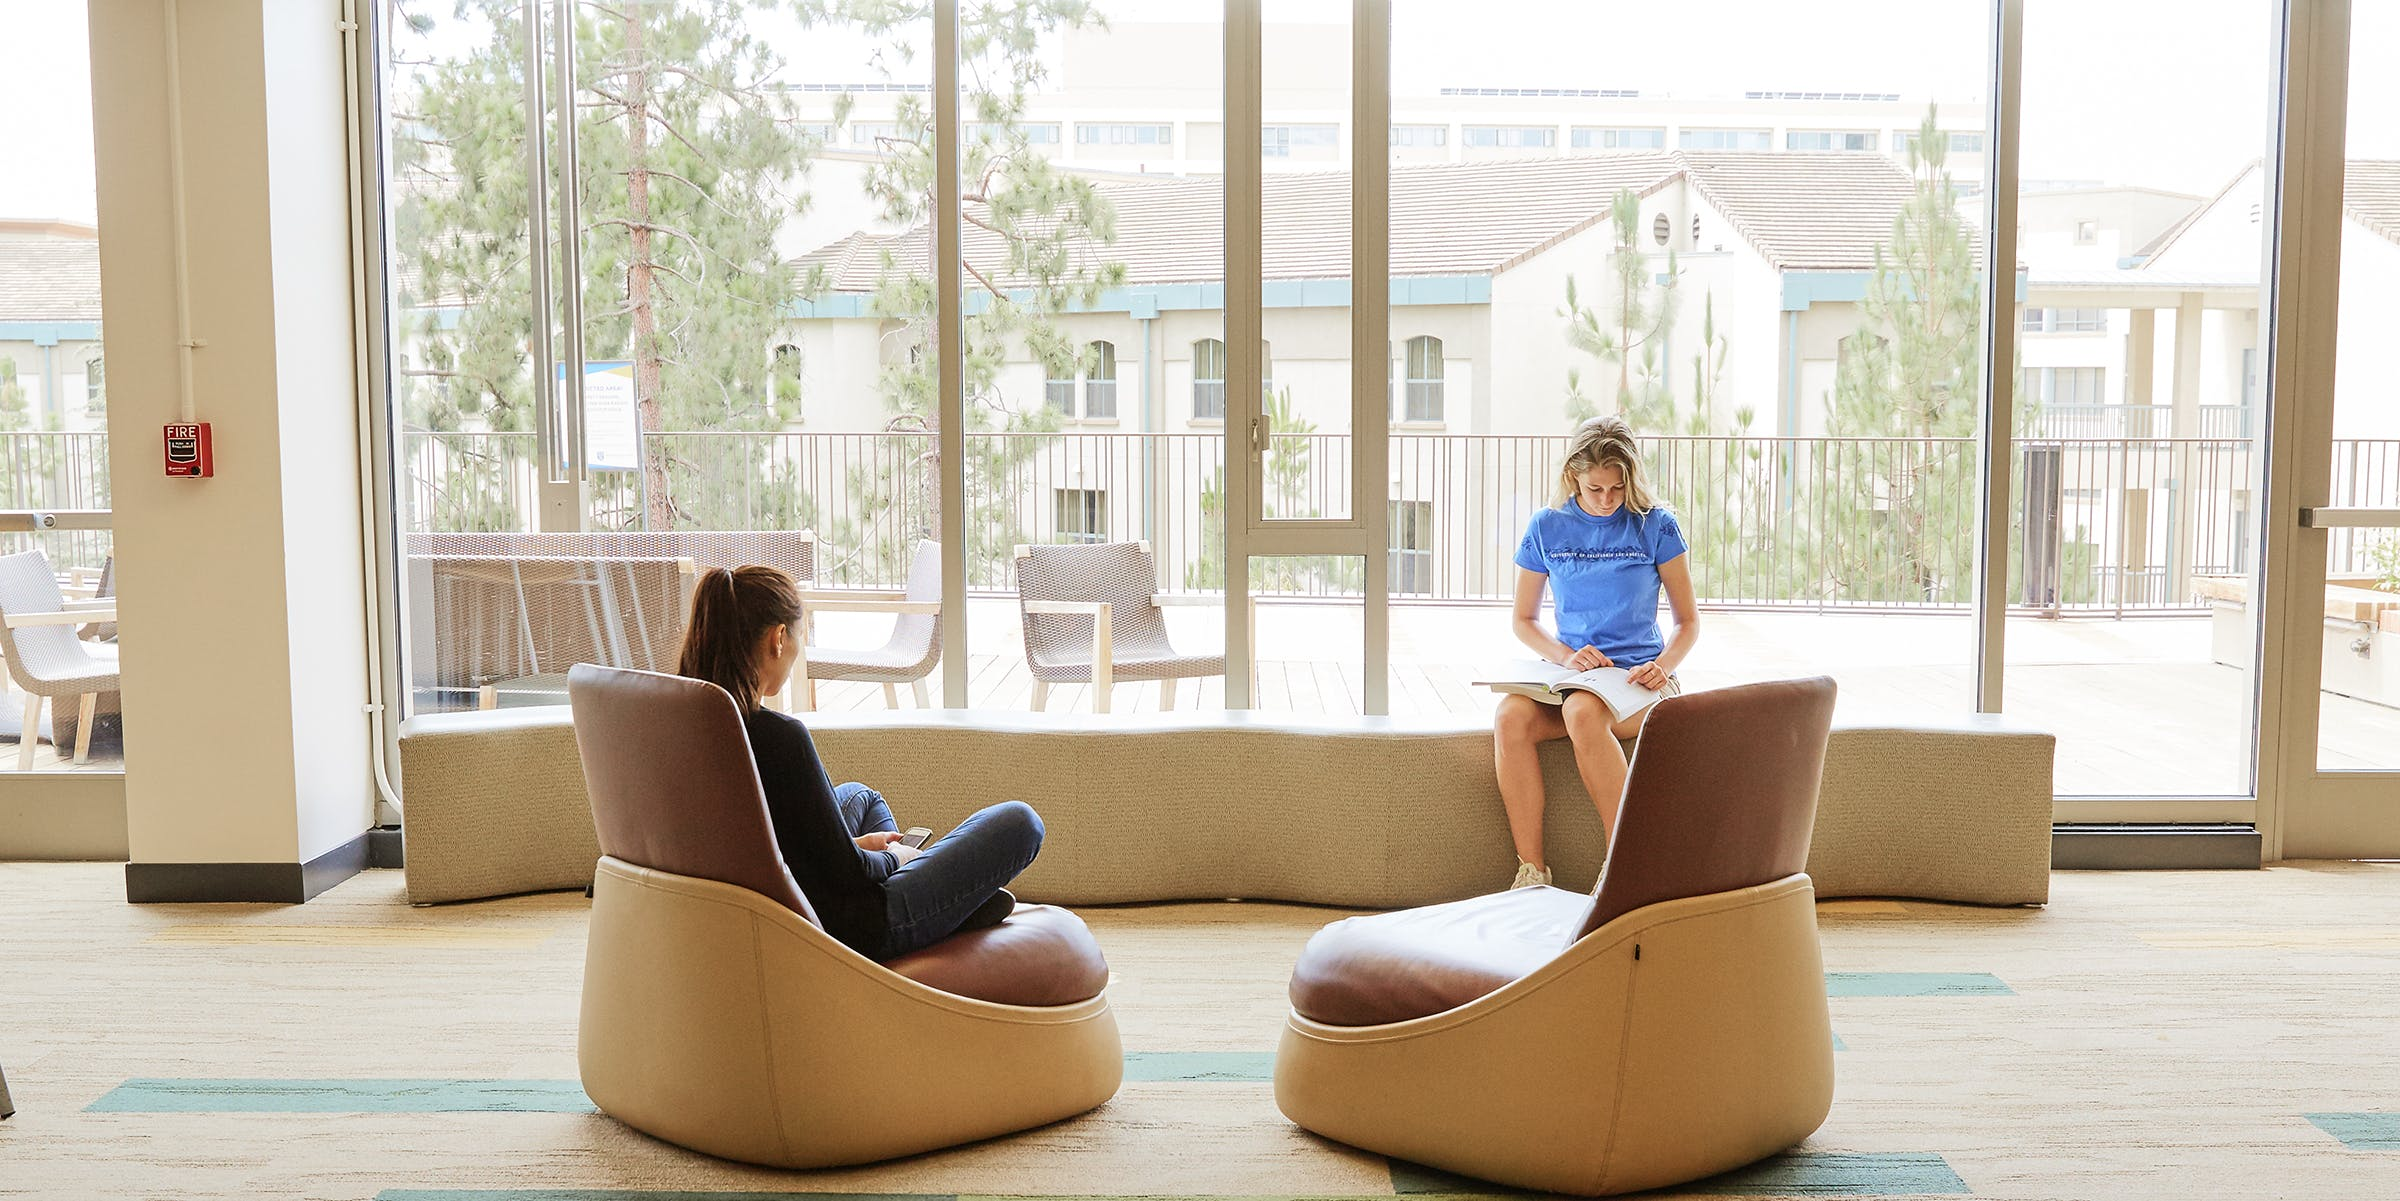 Students in a dorm lounge